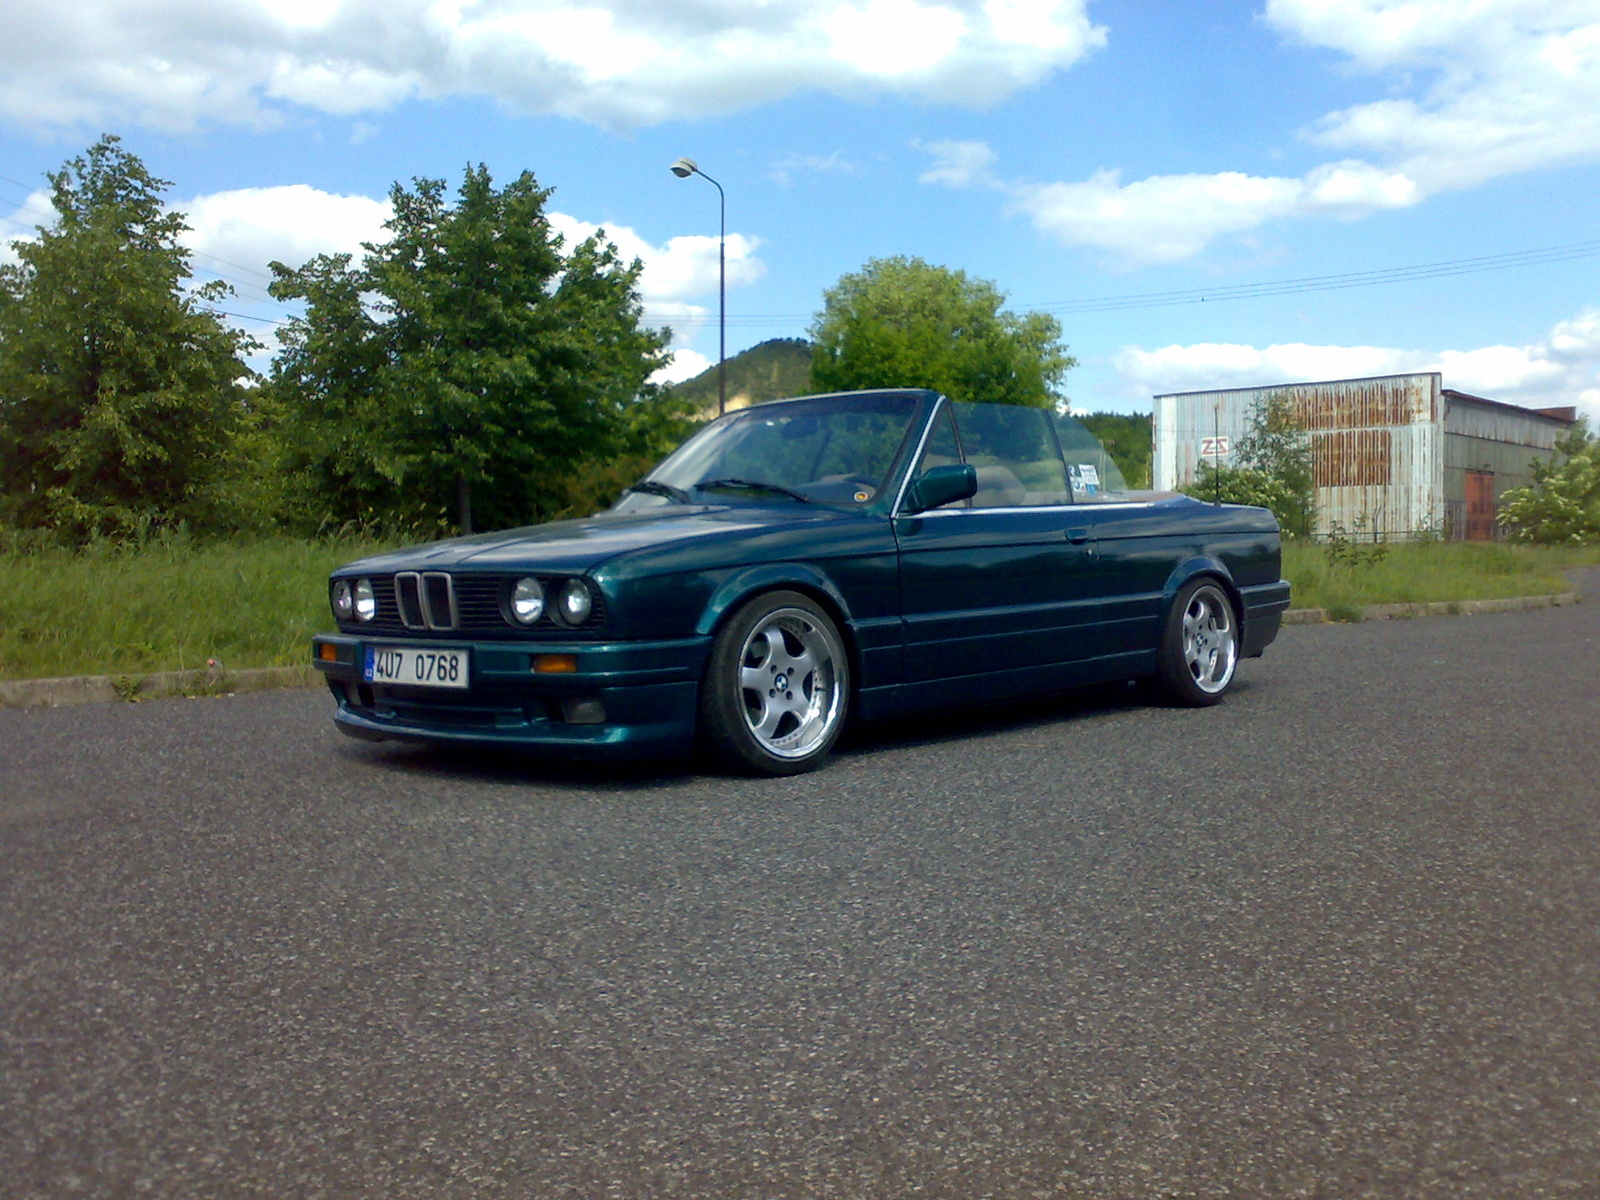 BMW 3 series 325ix 1992 photo - 8